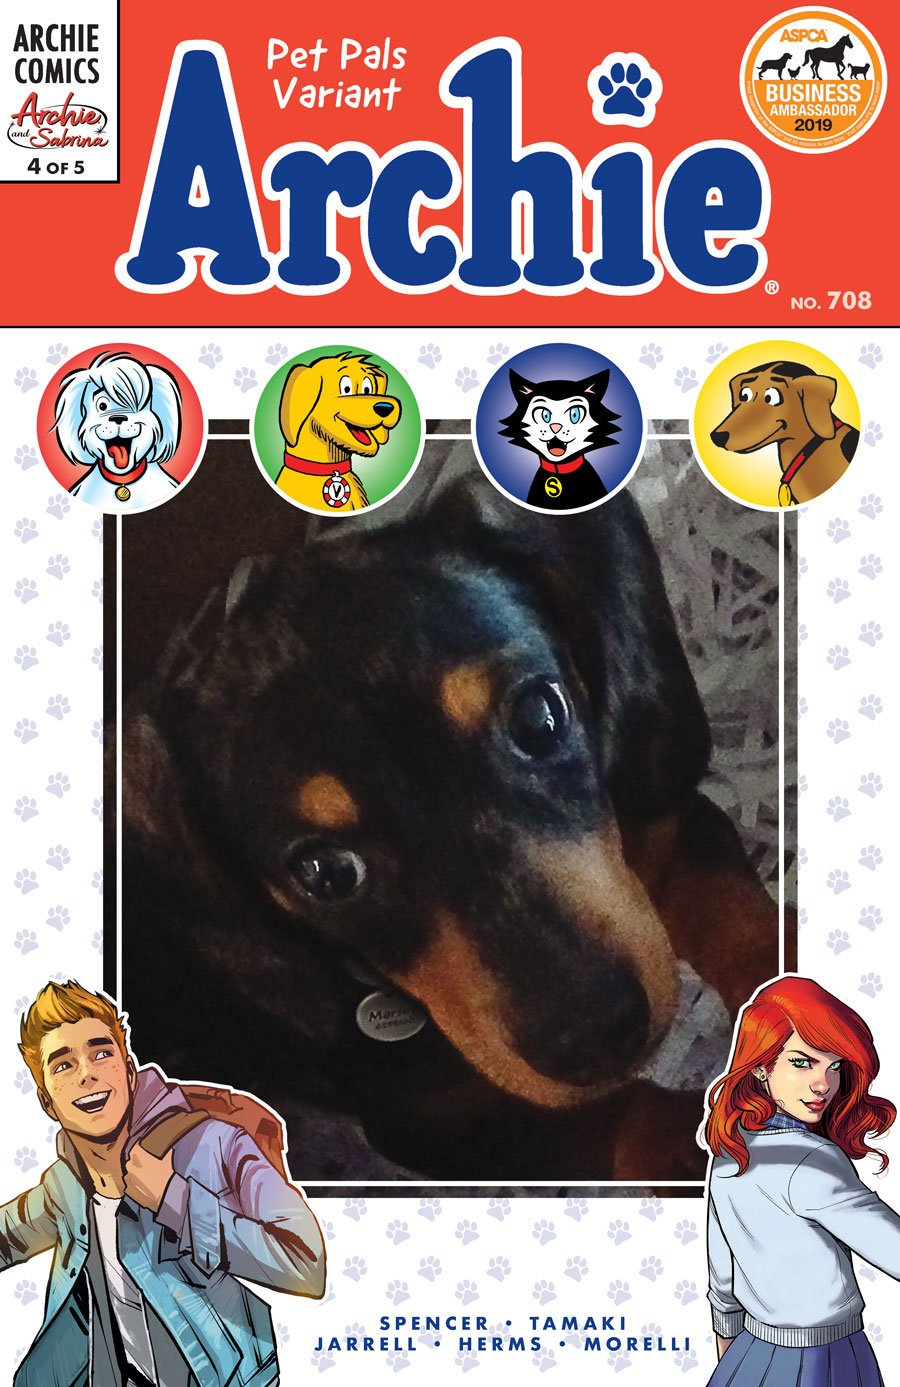 The Pet-Friendly Archie Comics Variant Charity Cover